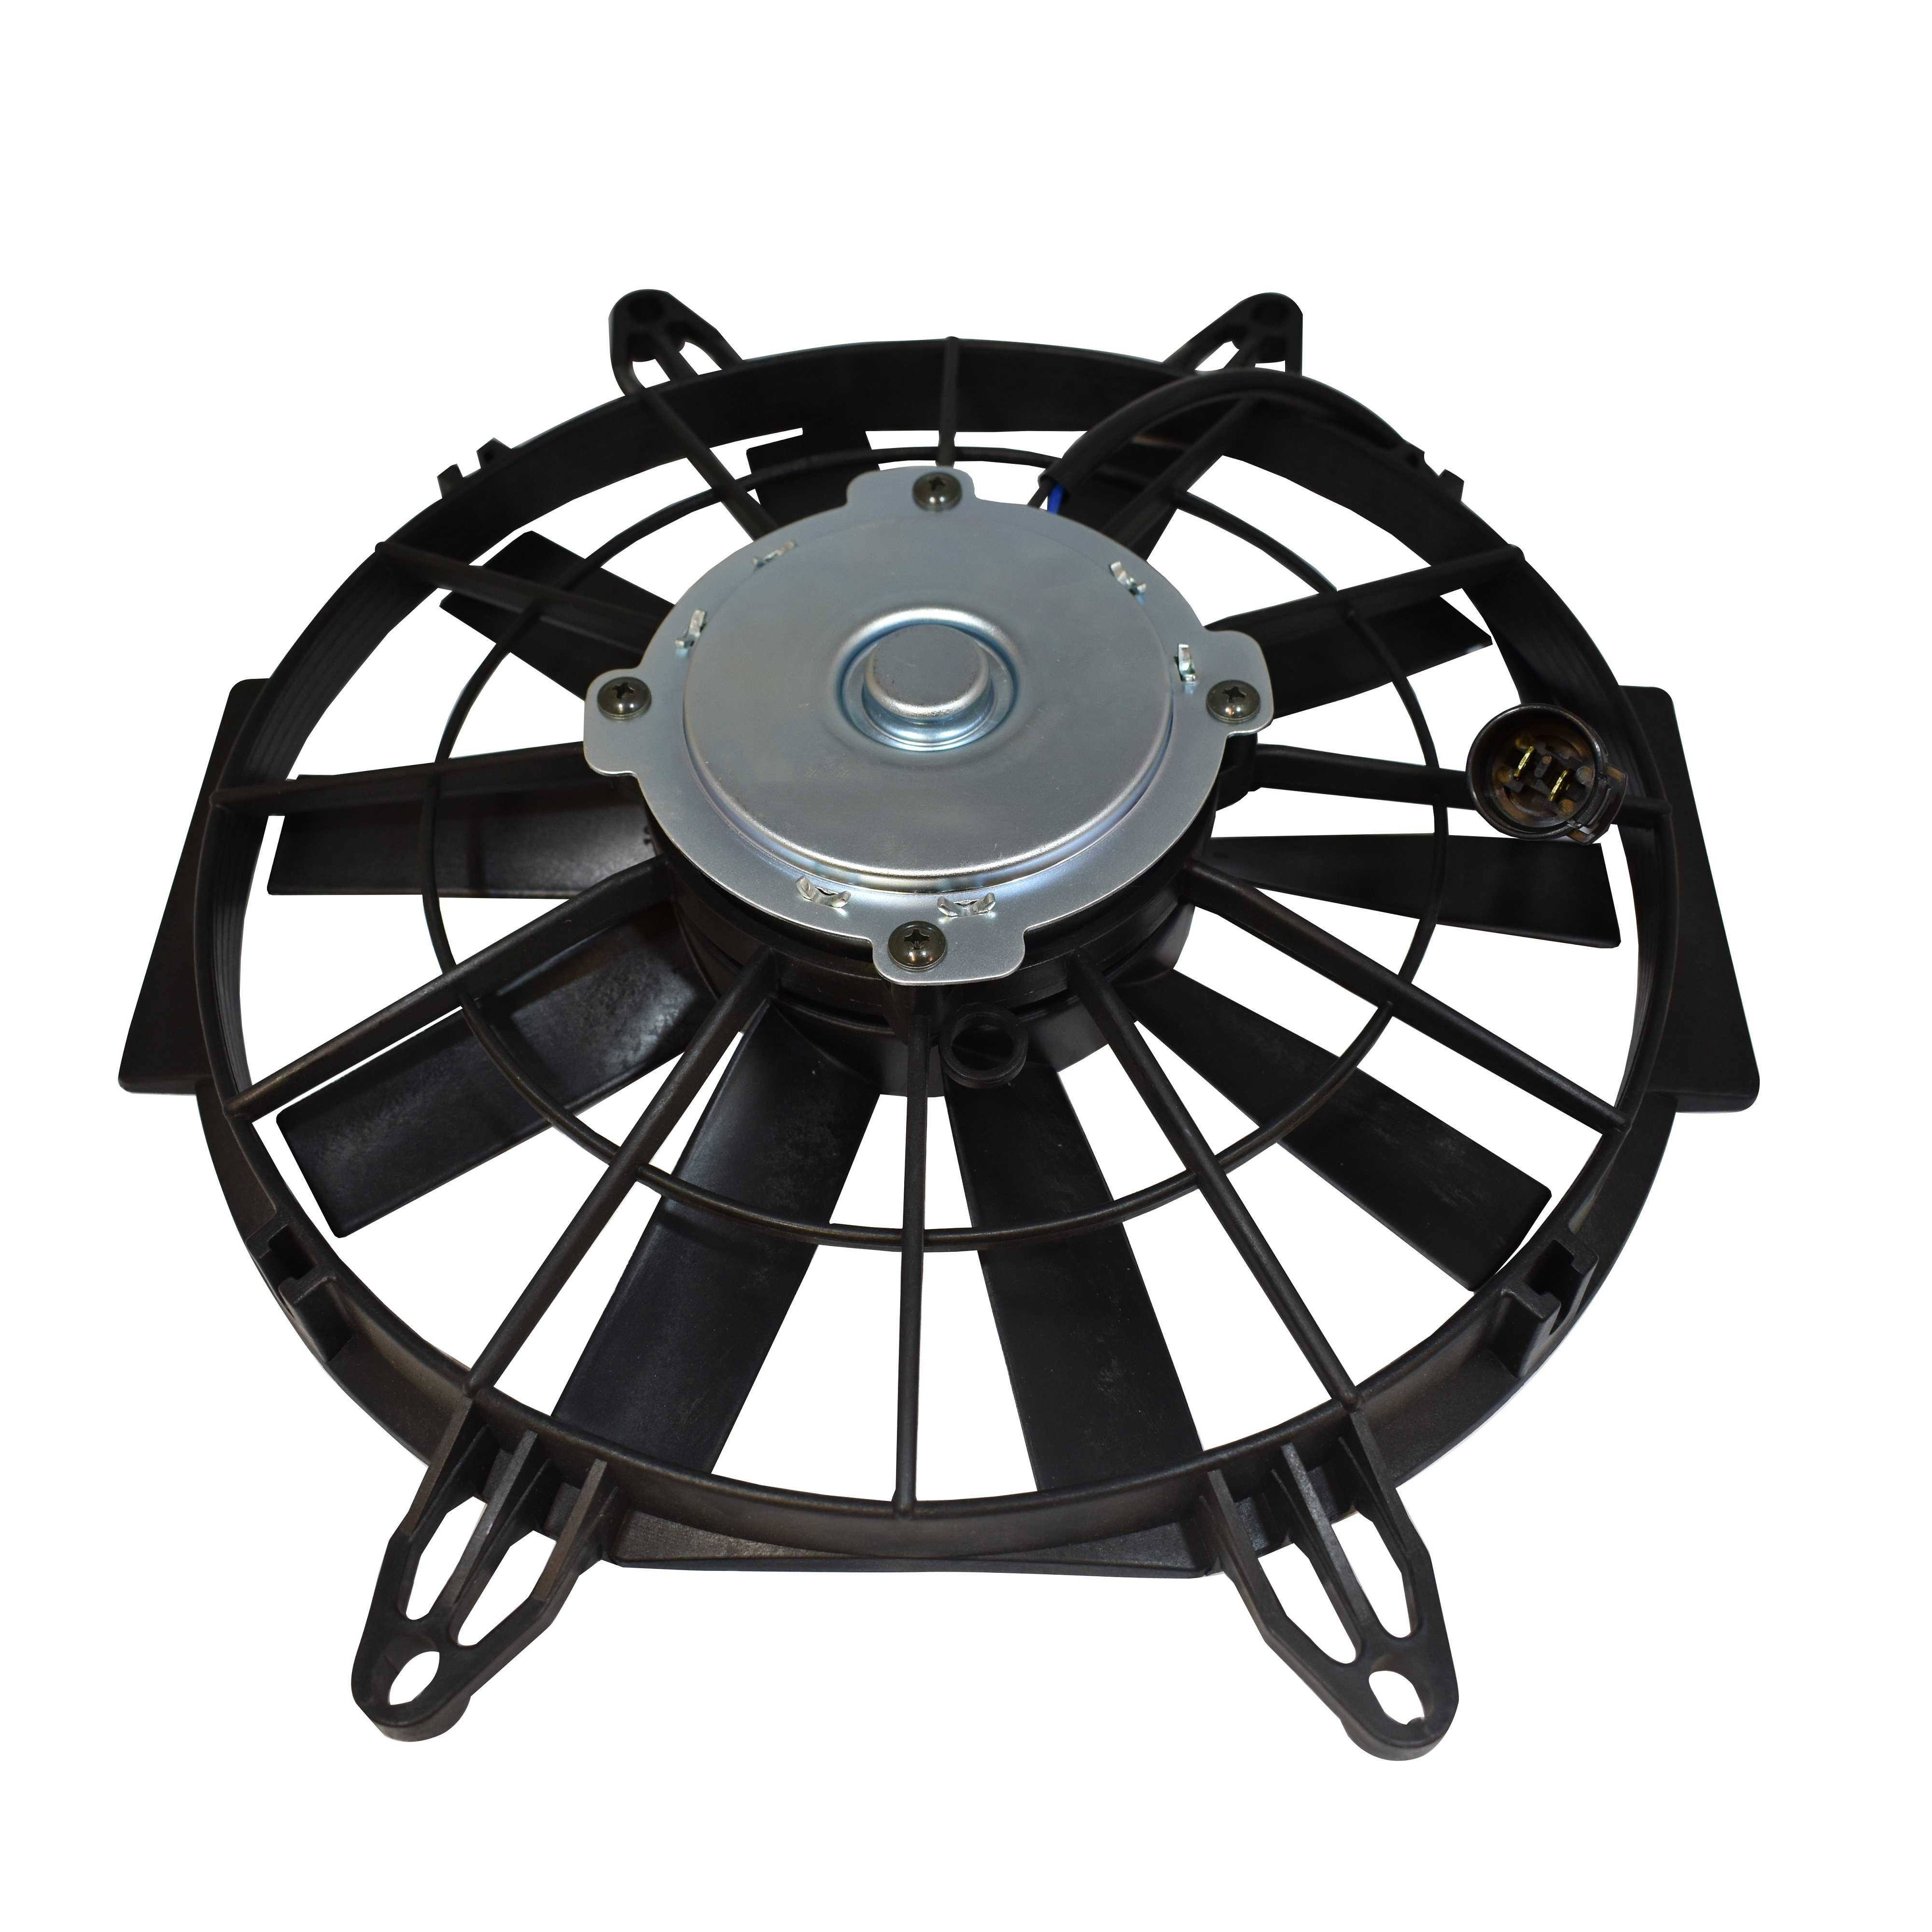 Fan Motor Product : Kawasaki utvs cooling fan motor assembly ready to mount in